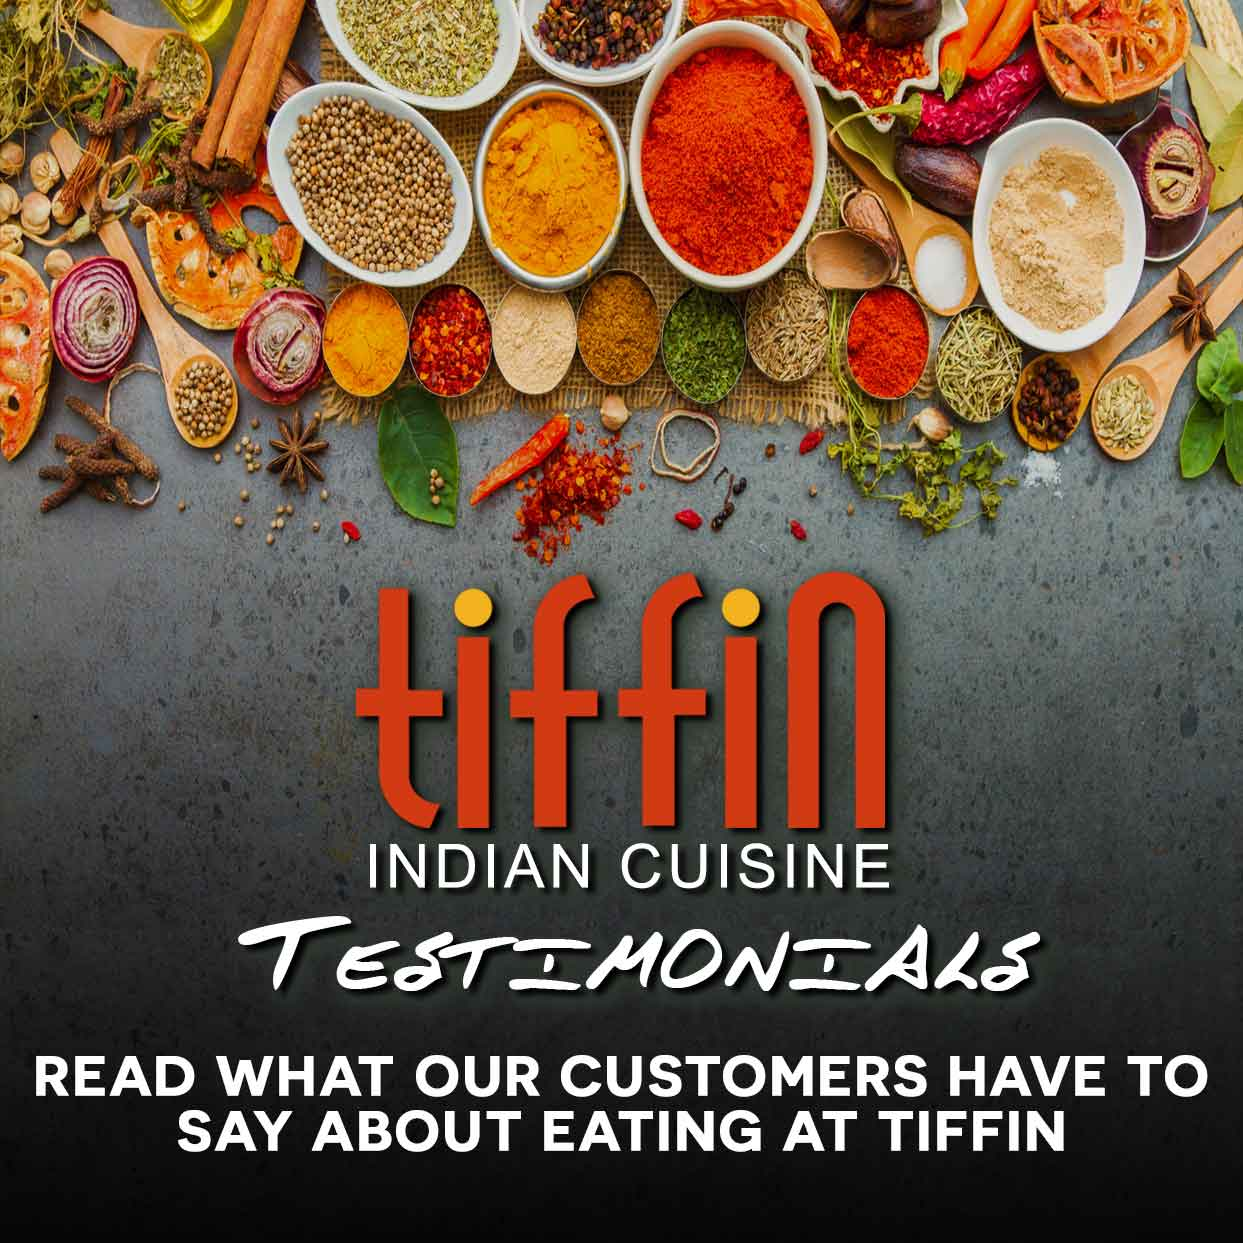 Indian Food South Philadelphia Tiffin Stadium Events Catering